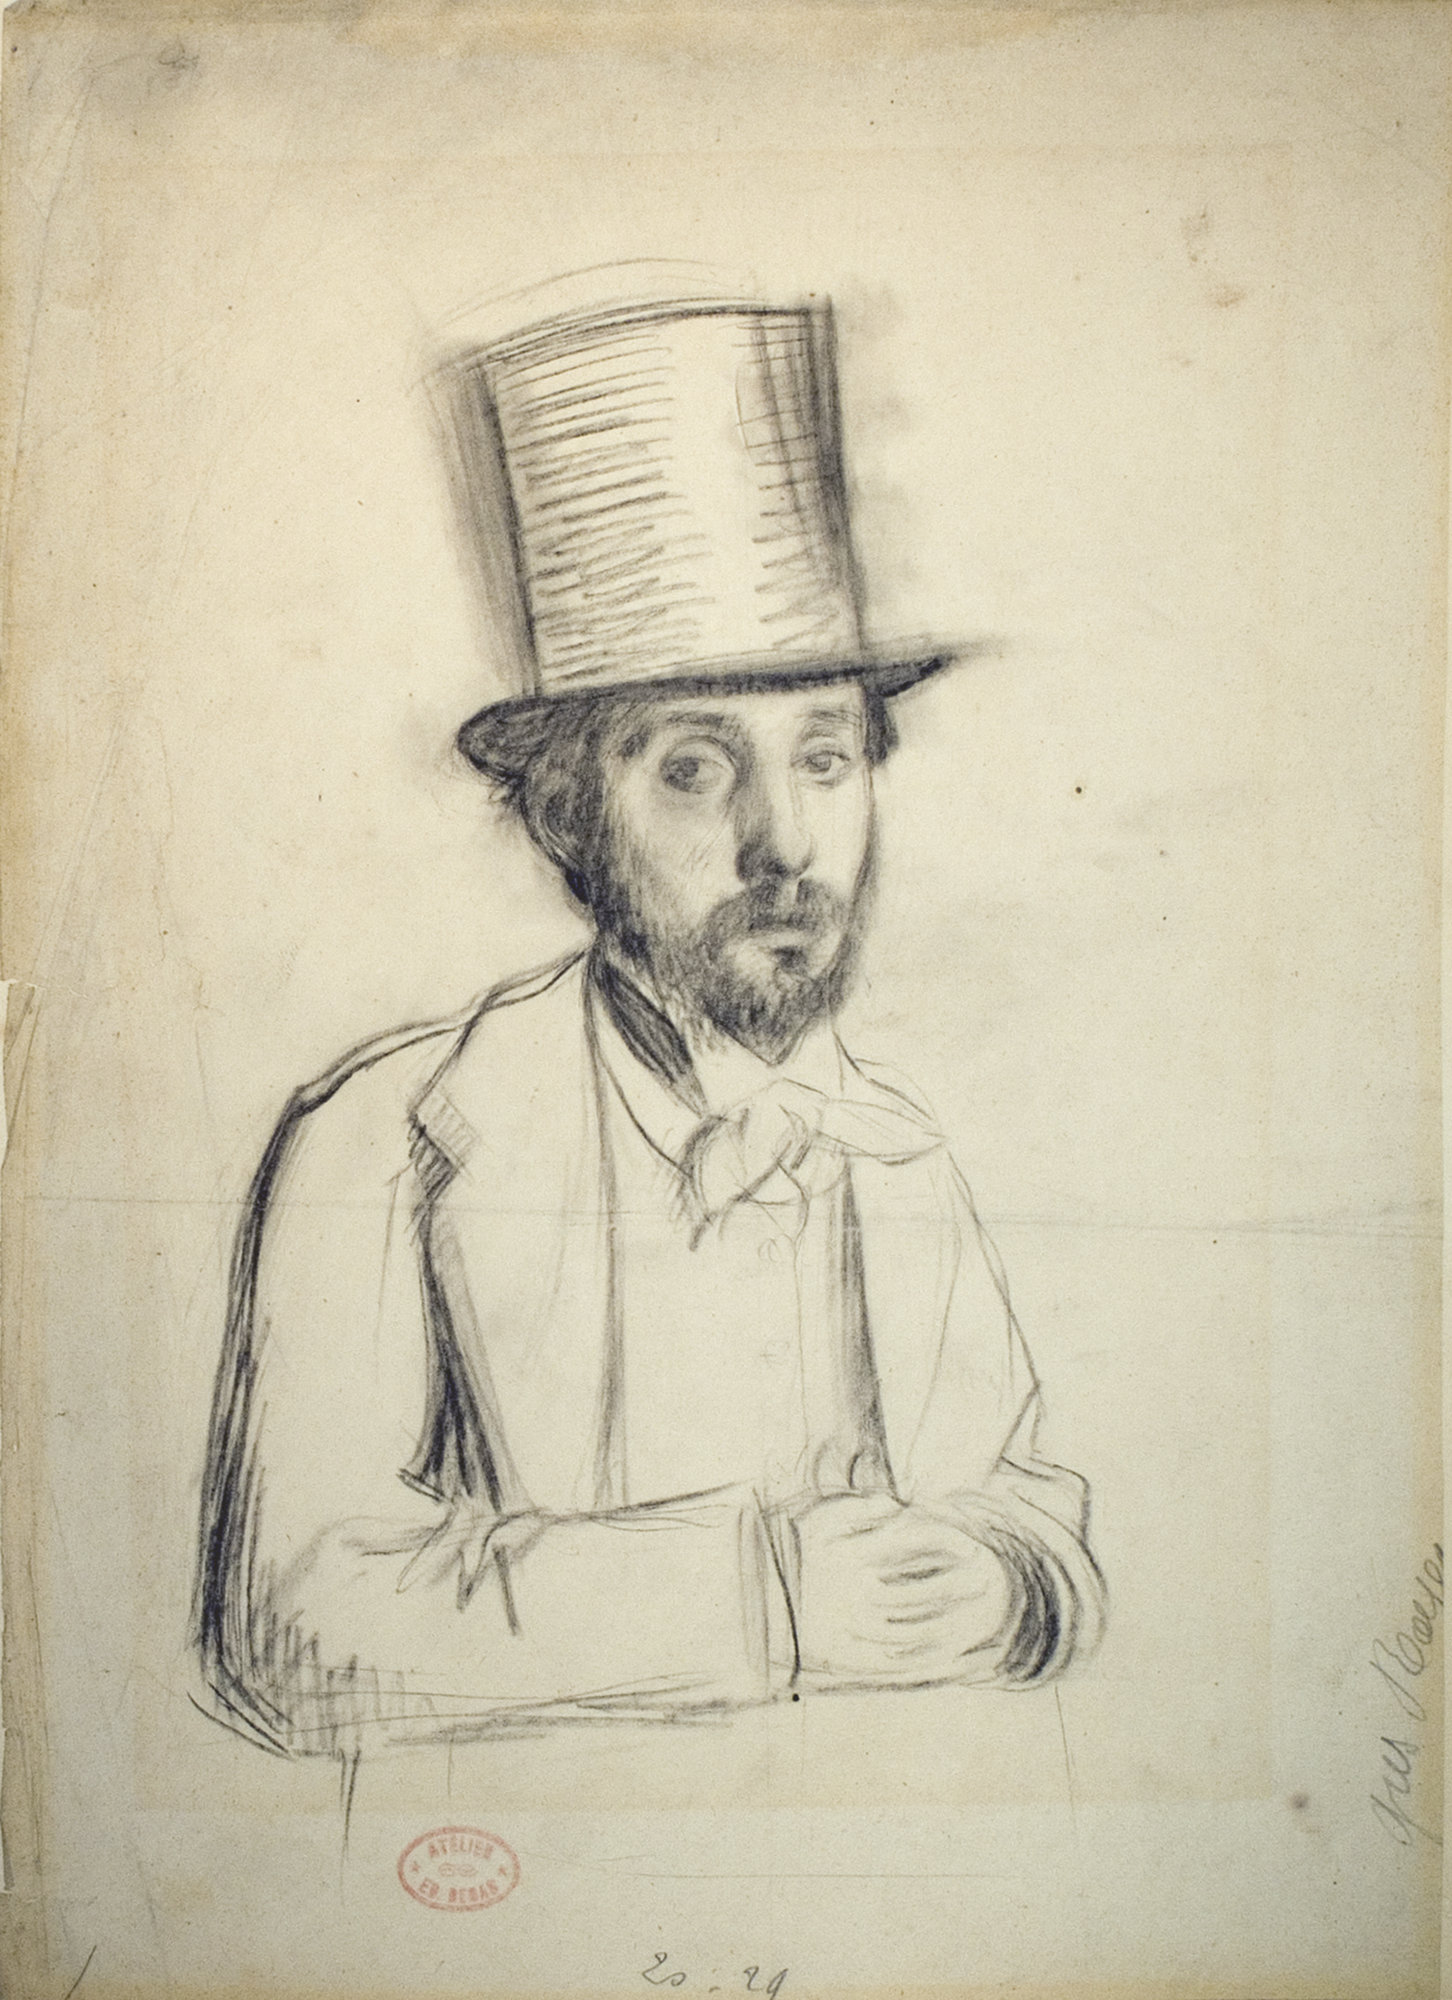 """Modernist Treasures In A Motley Melange, A Review of """"Degas to Picasso: Creating Modernism in France"""" at the Milwaukee Art Museum"""